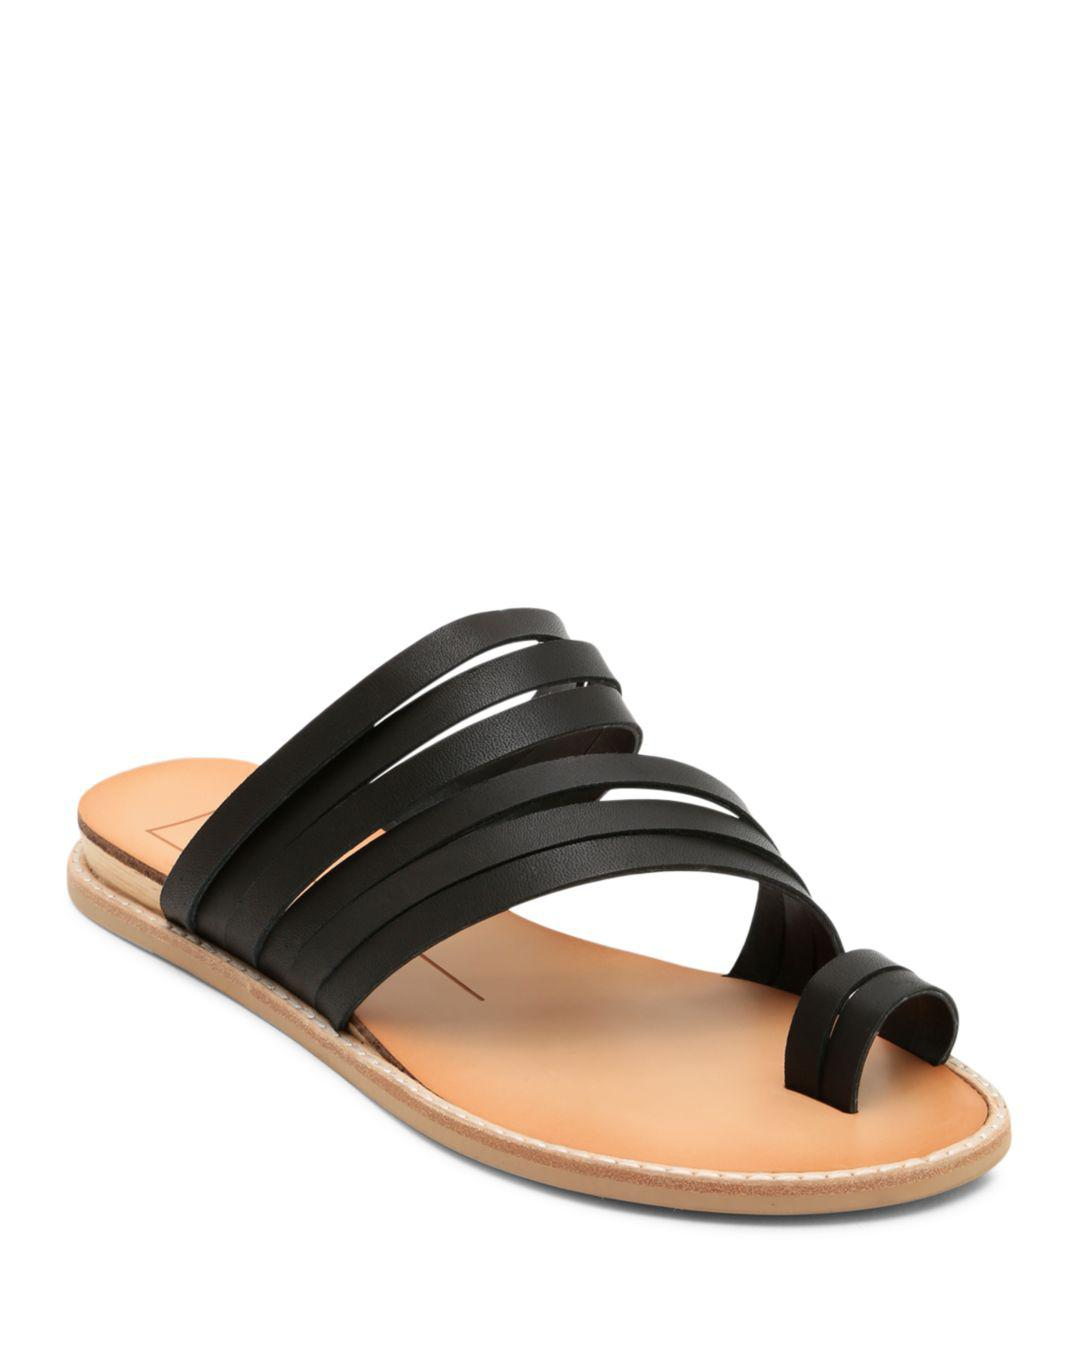 e9fca043ee9f9 Lyst - Dolce Vita Women s Nelly Strappy Leather Sandals in Black